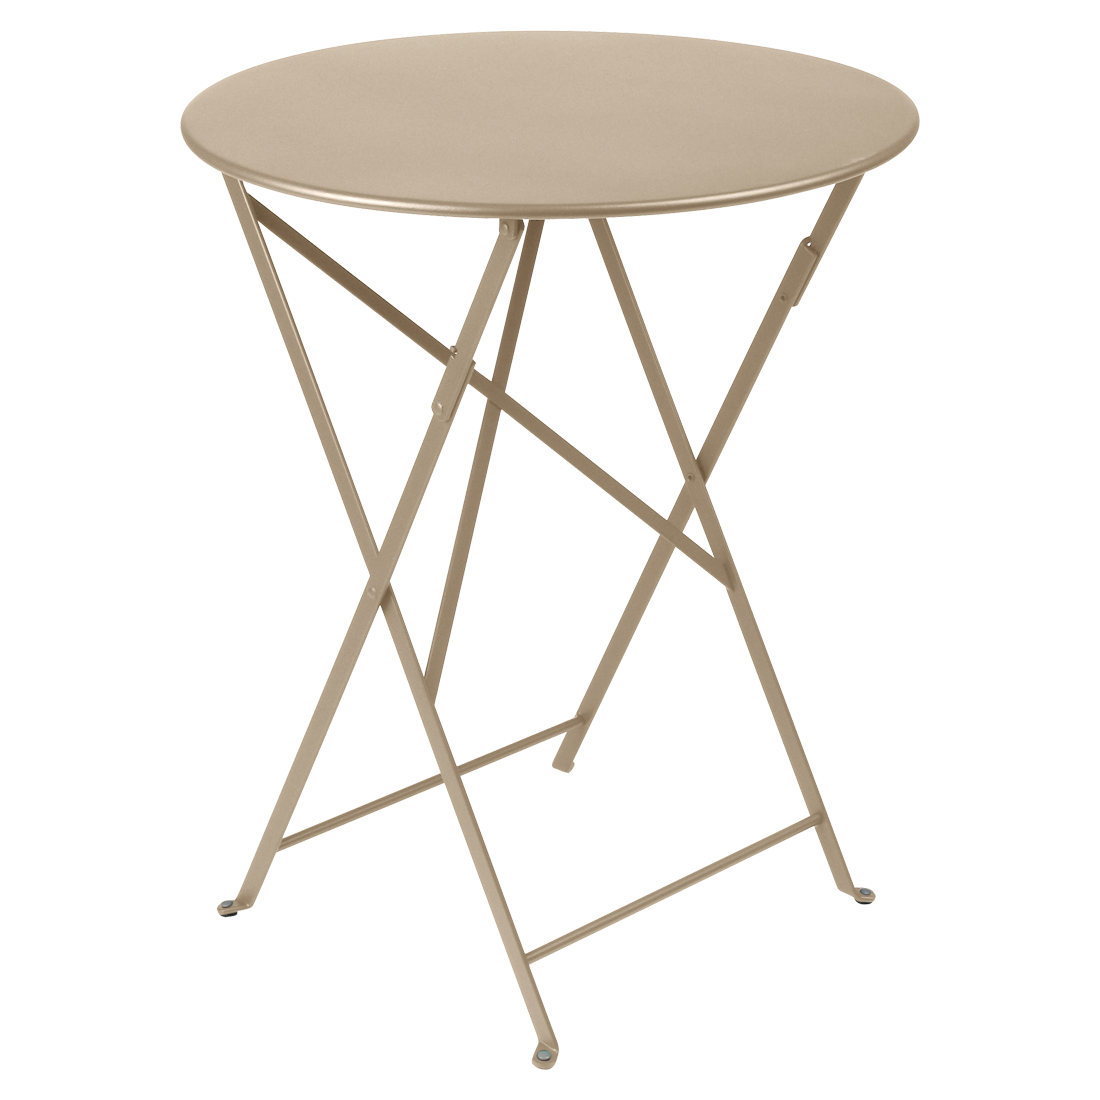 Table Bistro ronde 60 cm, table de jardin, table ronde jardin